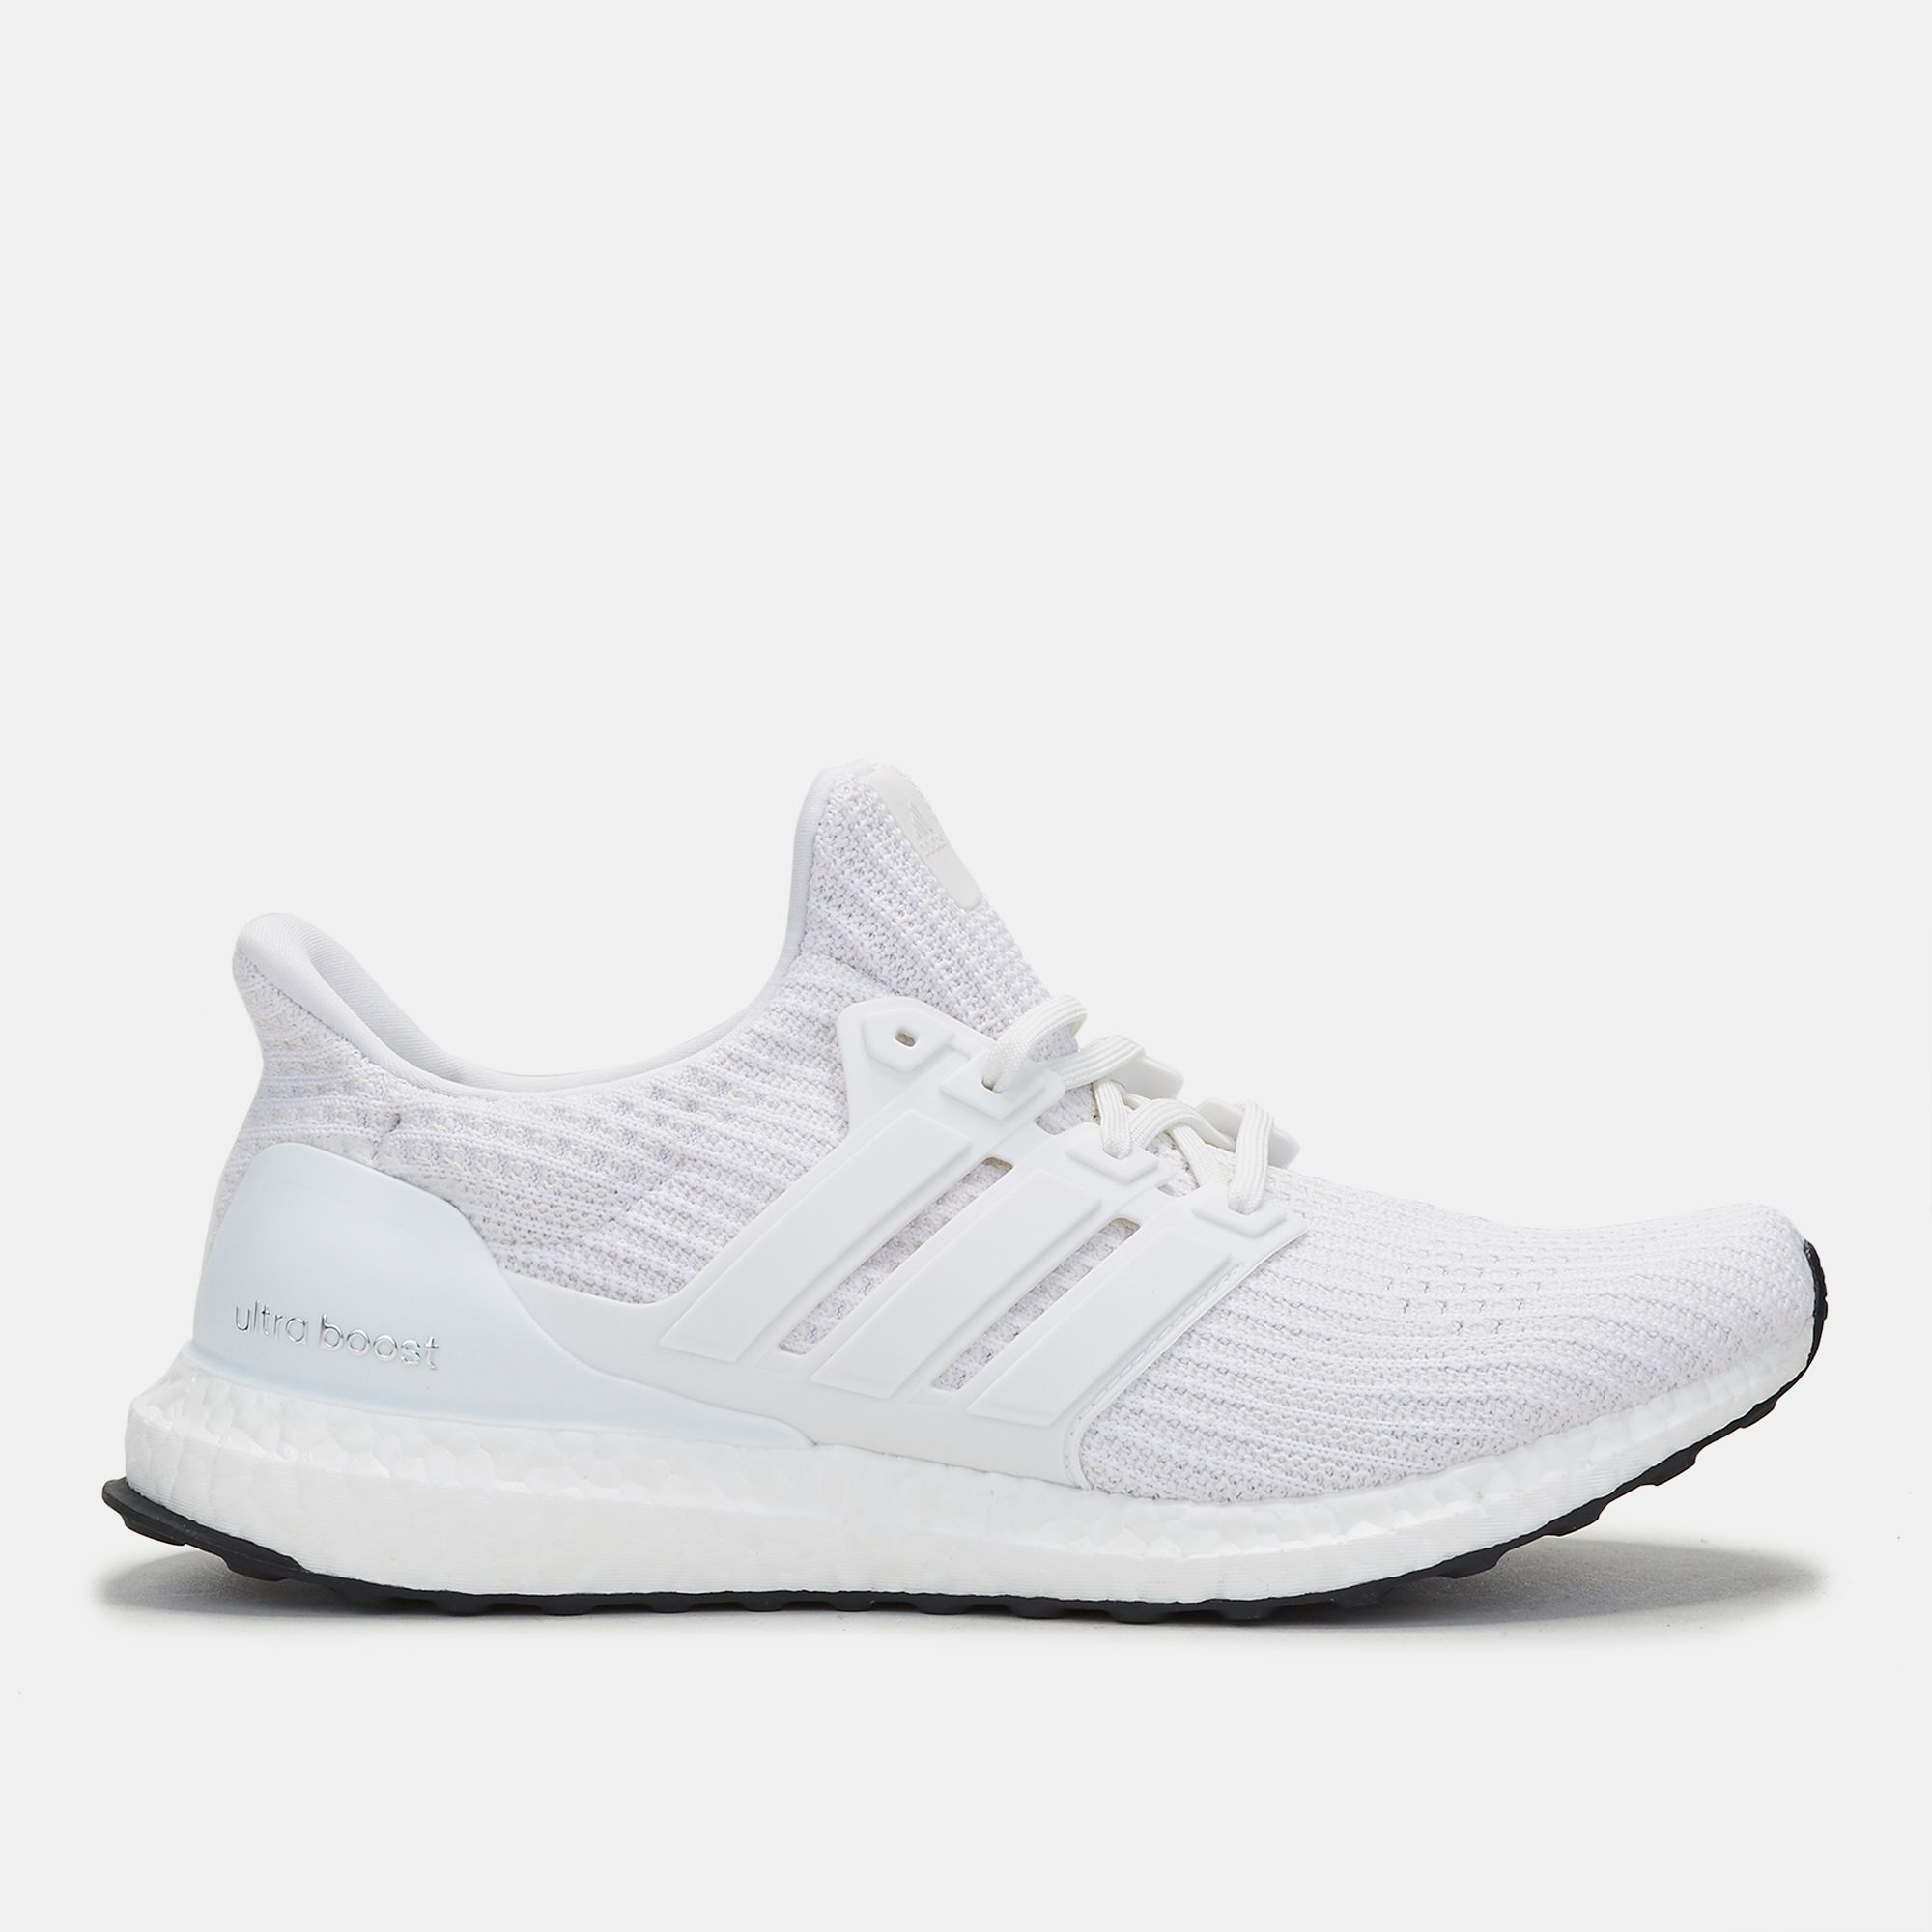 quality design 5fcda 0a0be Shop White adidas Ultraboost 4.0 Shoe for Mens by adidas   SSS